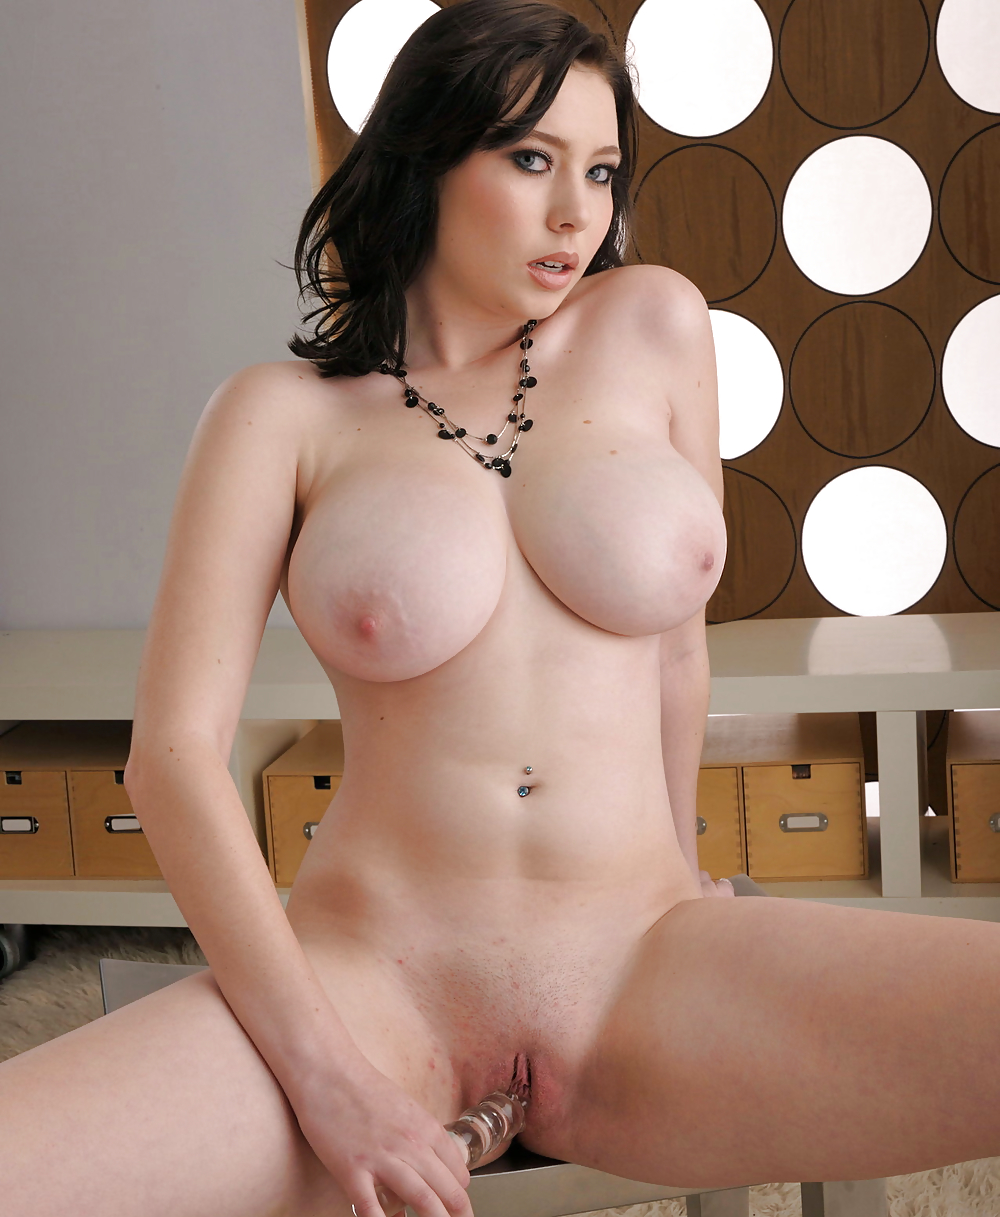 Softcore porn and busty woman